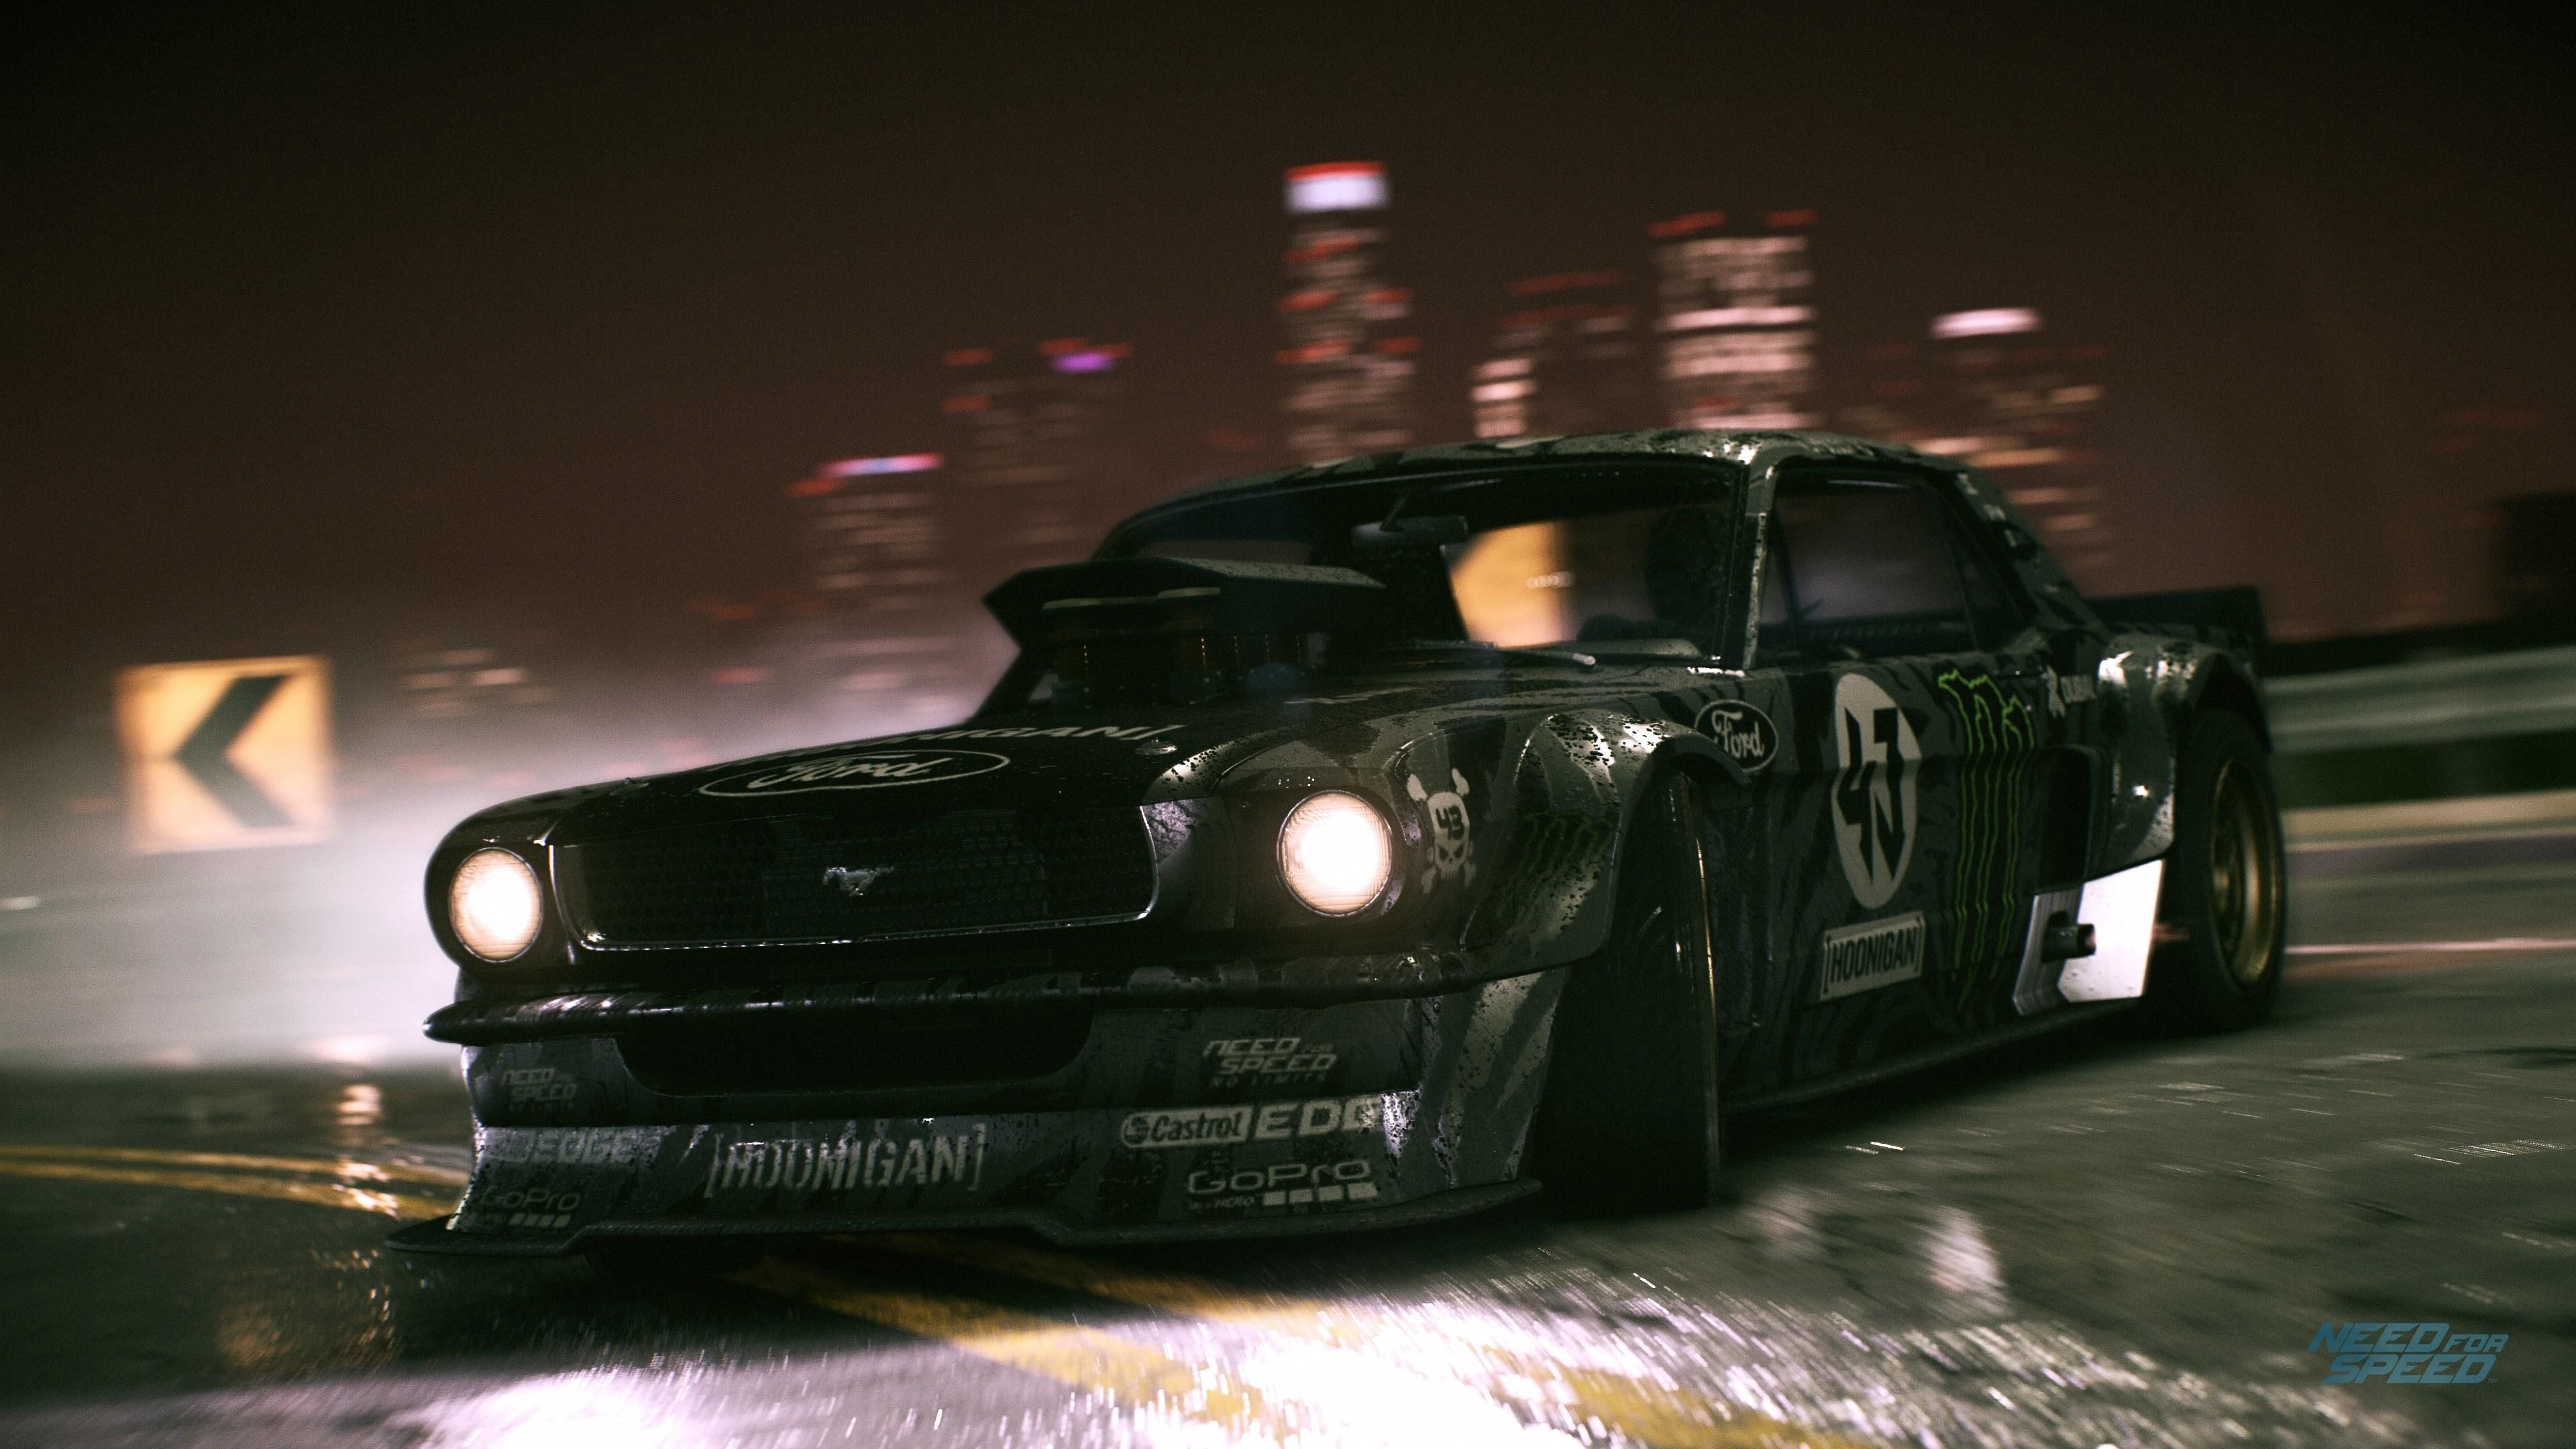 Hoonigan Ken Block Monster Hunicorn Ford Need For Speed Block43 Game 2015 Cars Mustang Car 4k Need For Speed Need For Speed Pc Sports Car Wallpaper